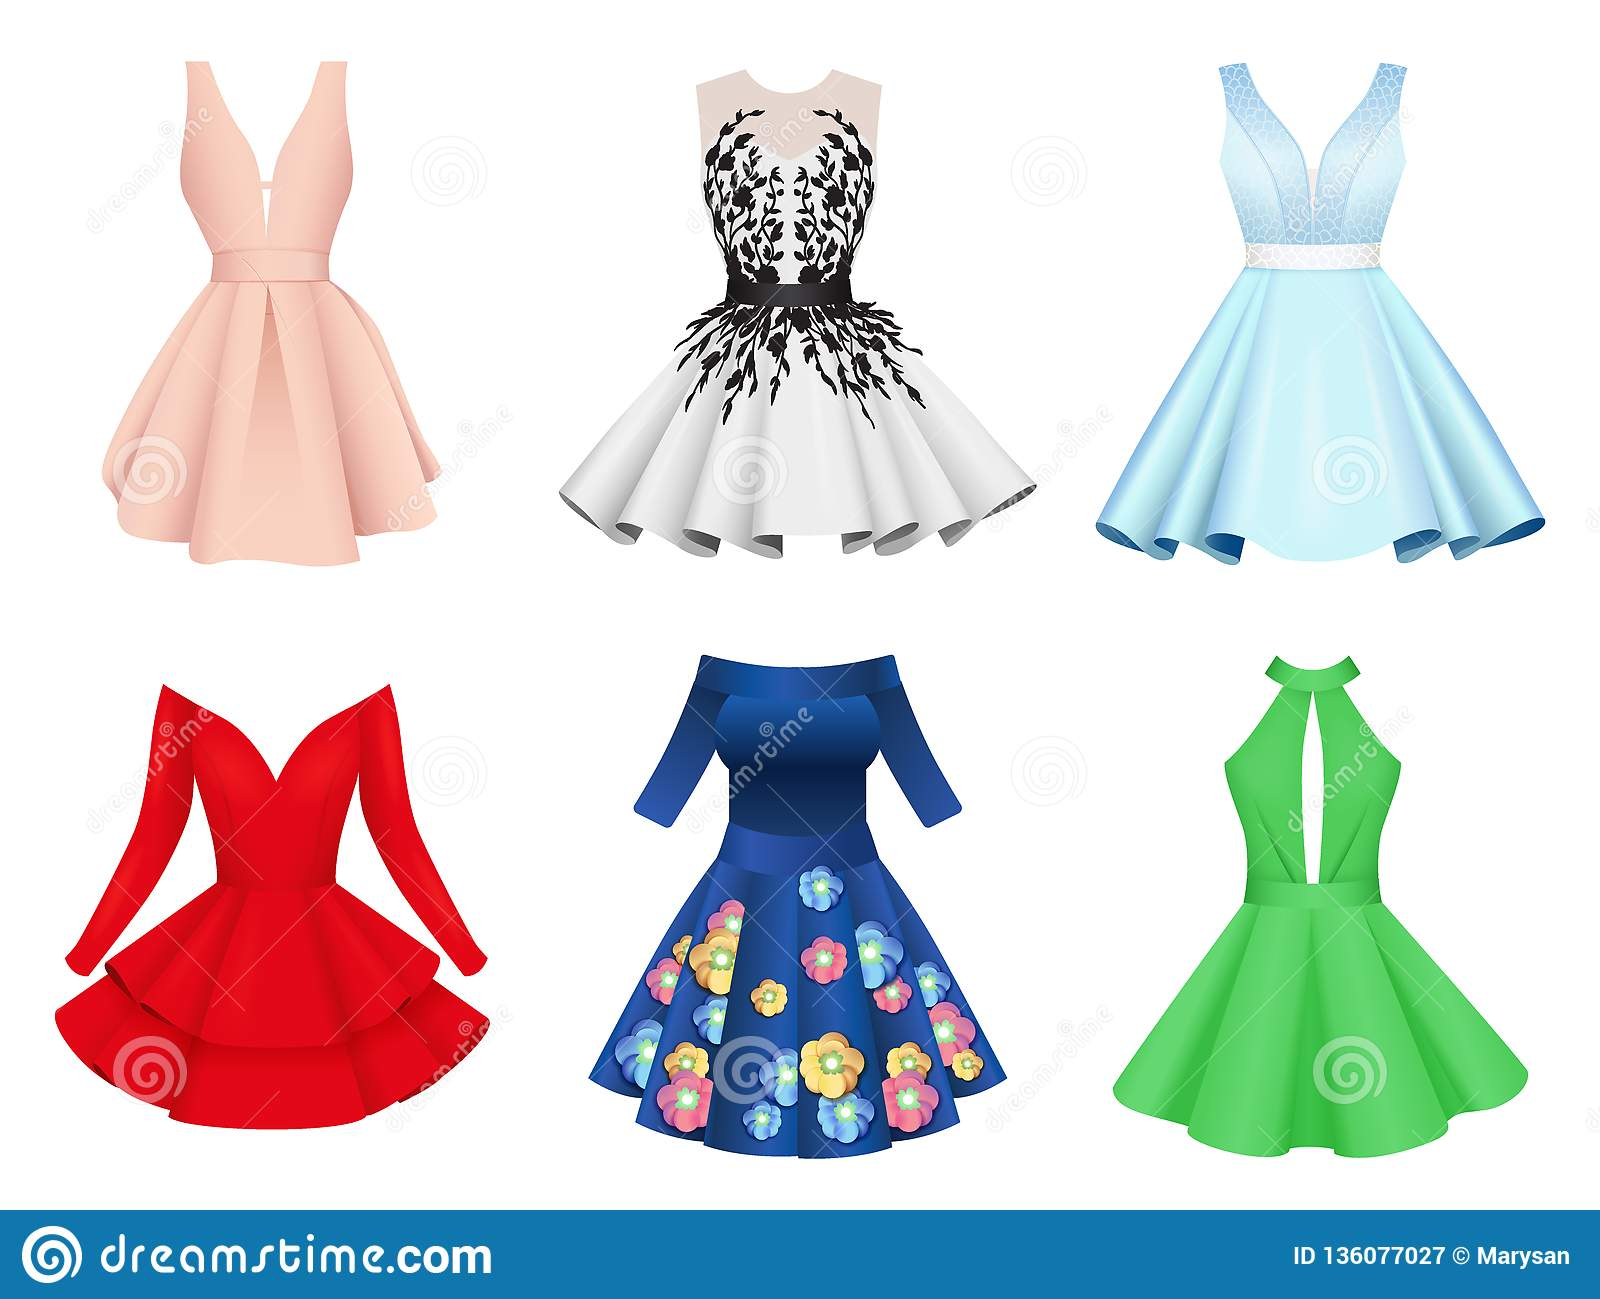 6a37449fa34b45 Set of elegant colorful women cocktail dresses, fashion clothes with  pattern print, with short skirt, flat style vector illustration isolated on  white ...